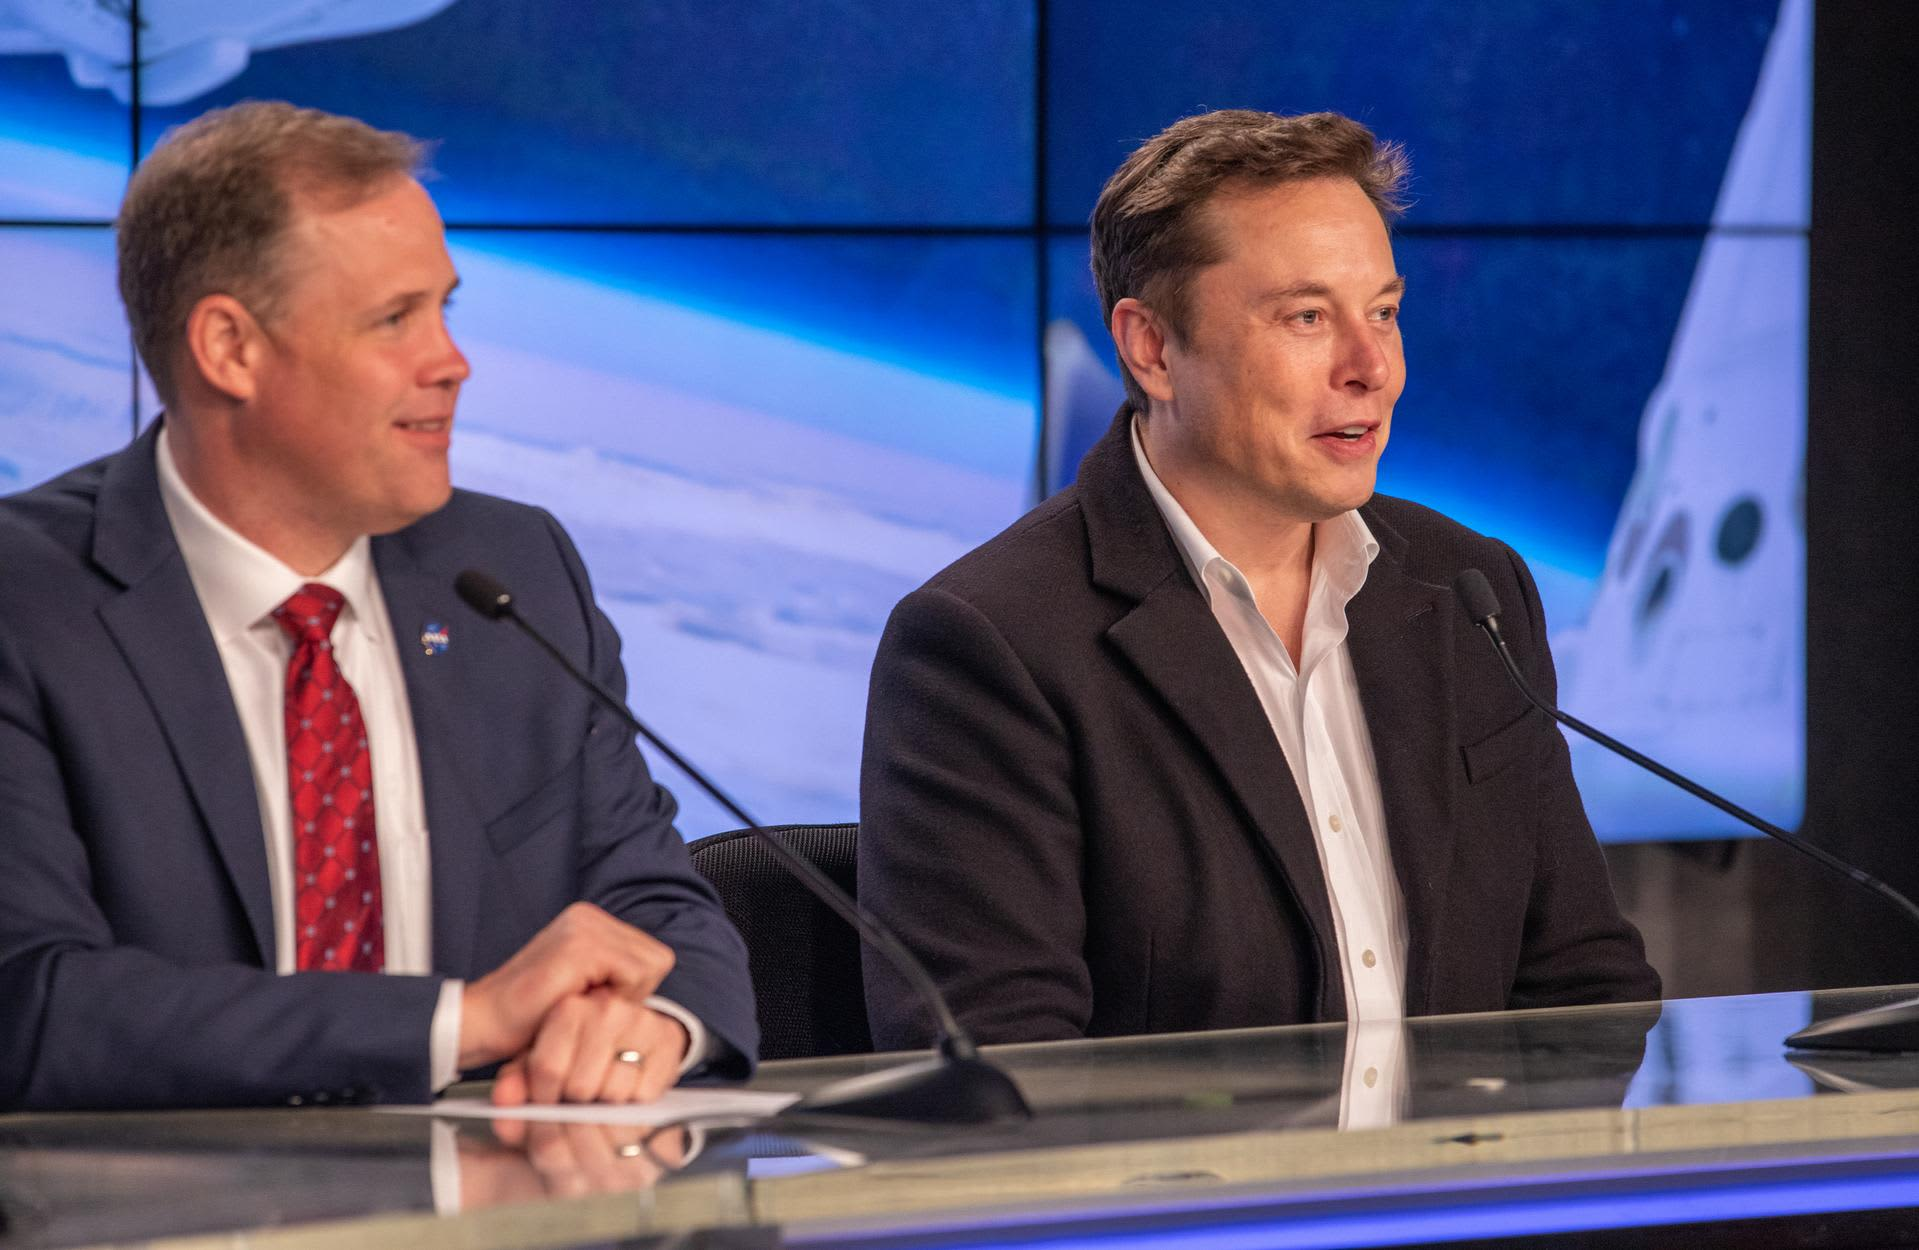 Watch Elon Musk and NASA chief Jim Bridenstine give an update on SpaceX's astronaut spacecraft